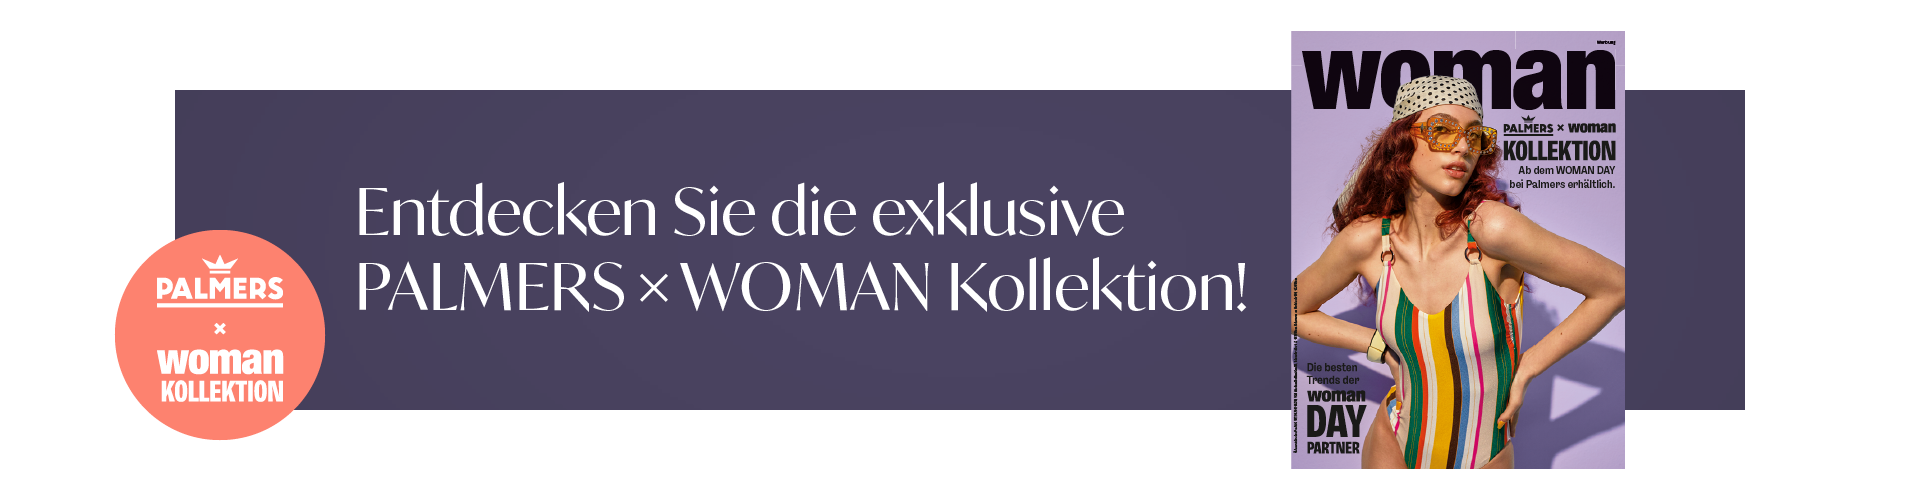 Palmers x Woman Kollektion